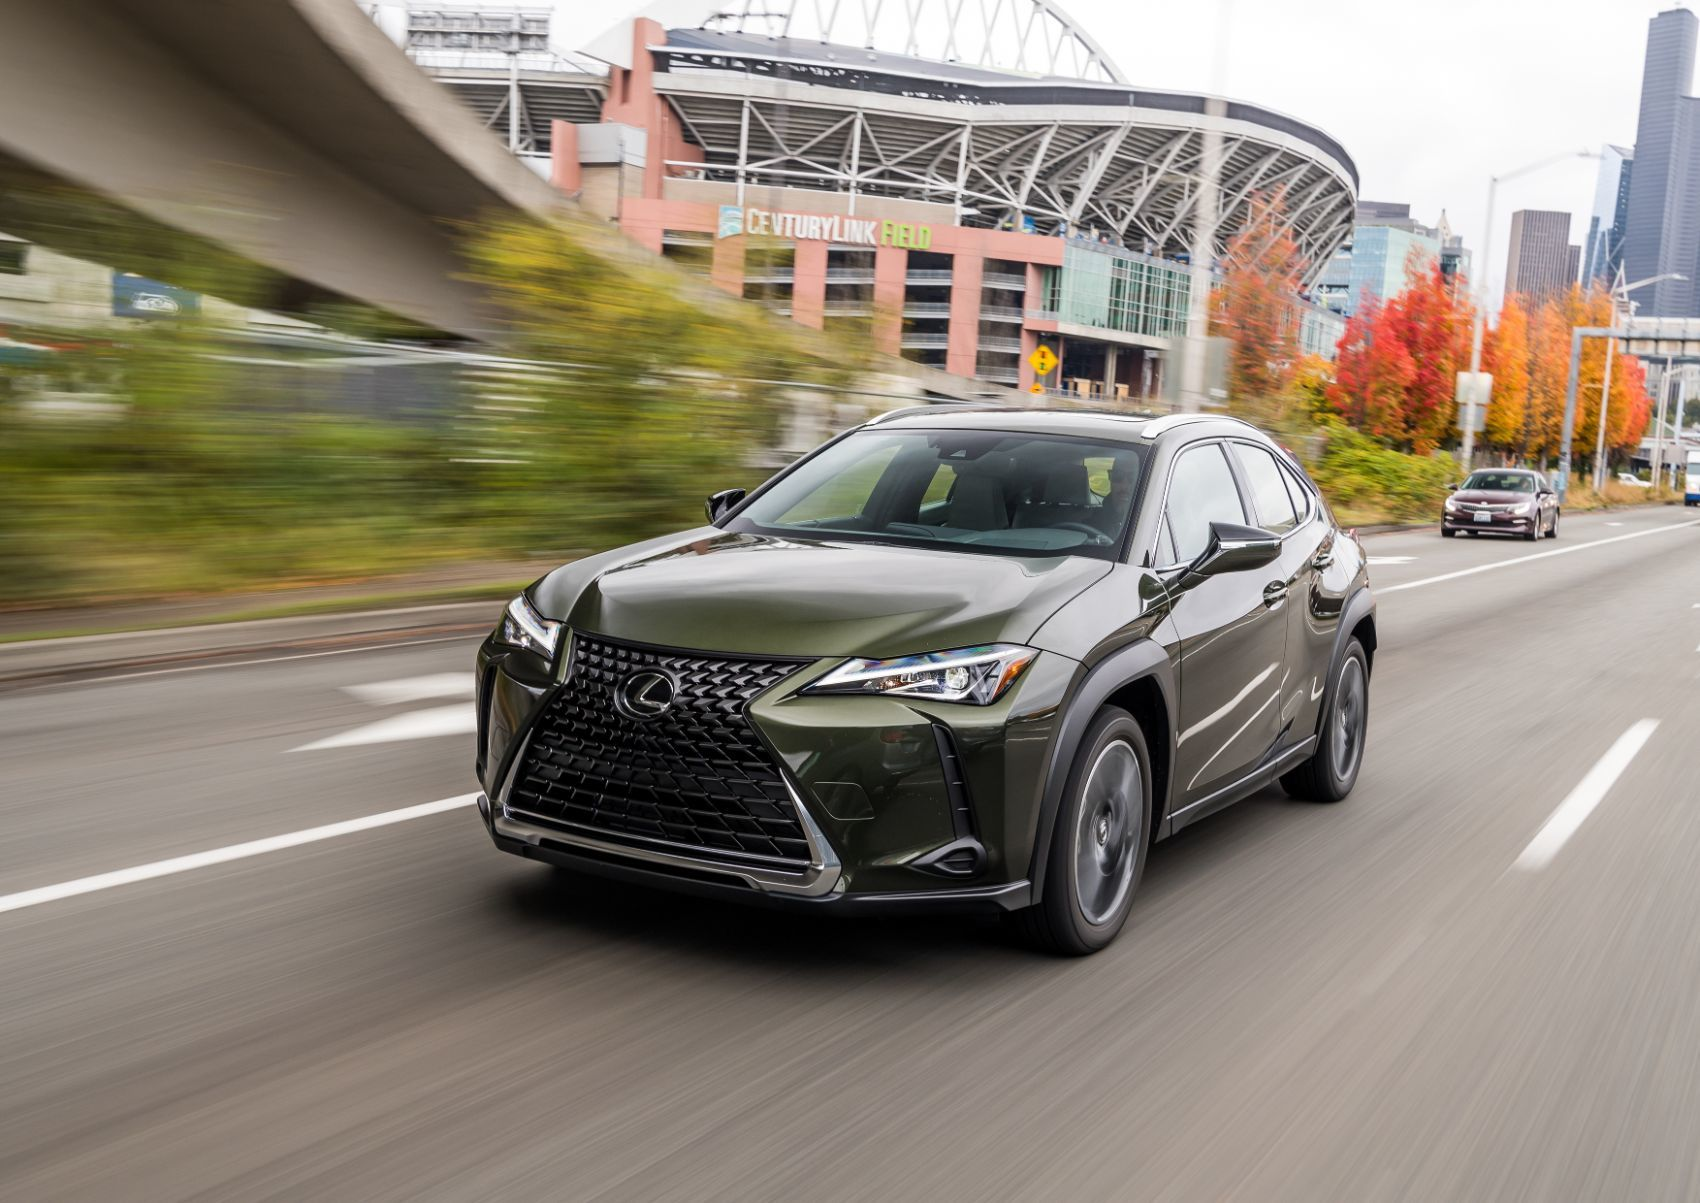 2019 Lexus UX 250h Review: A Small Package For The Big City